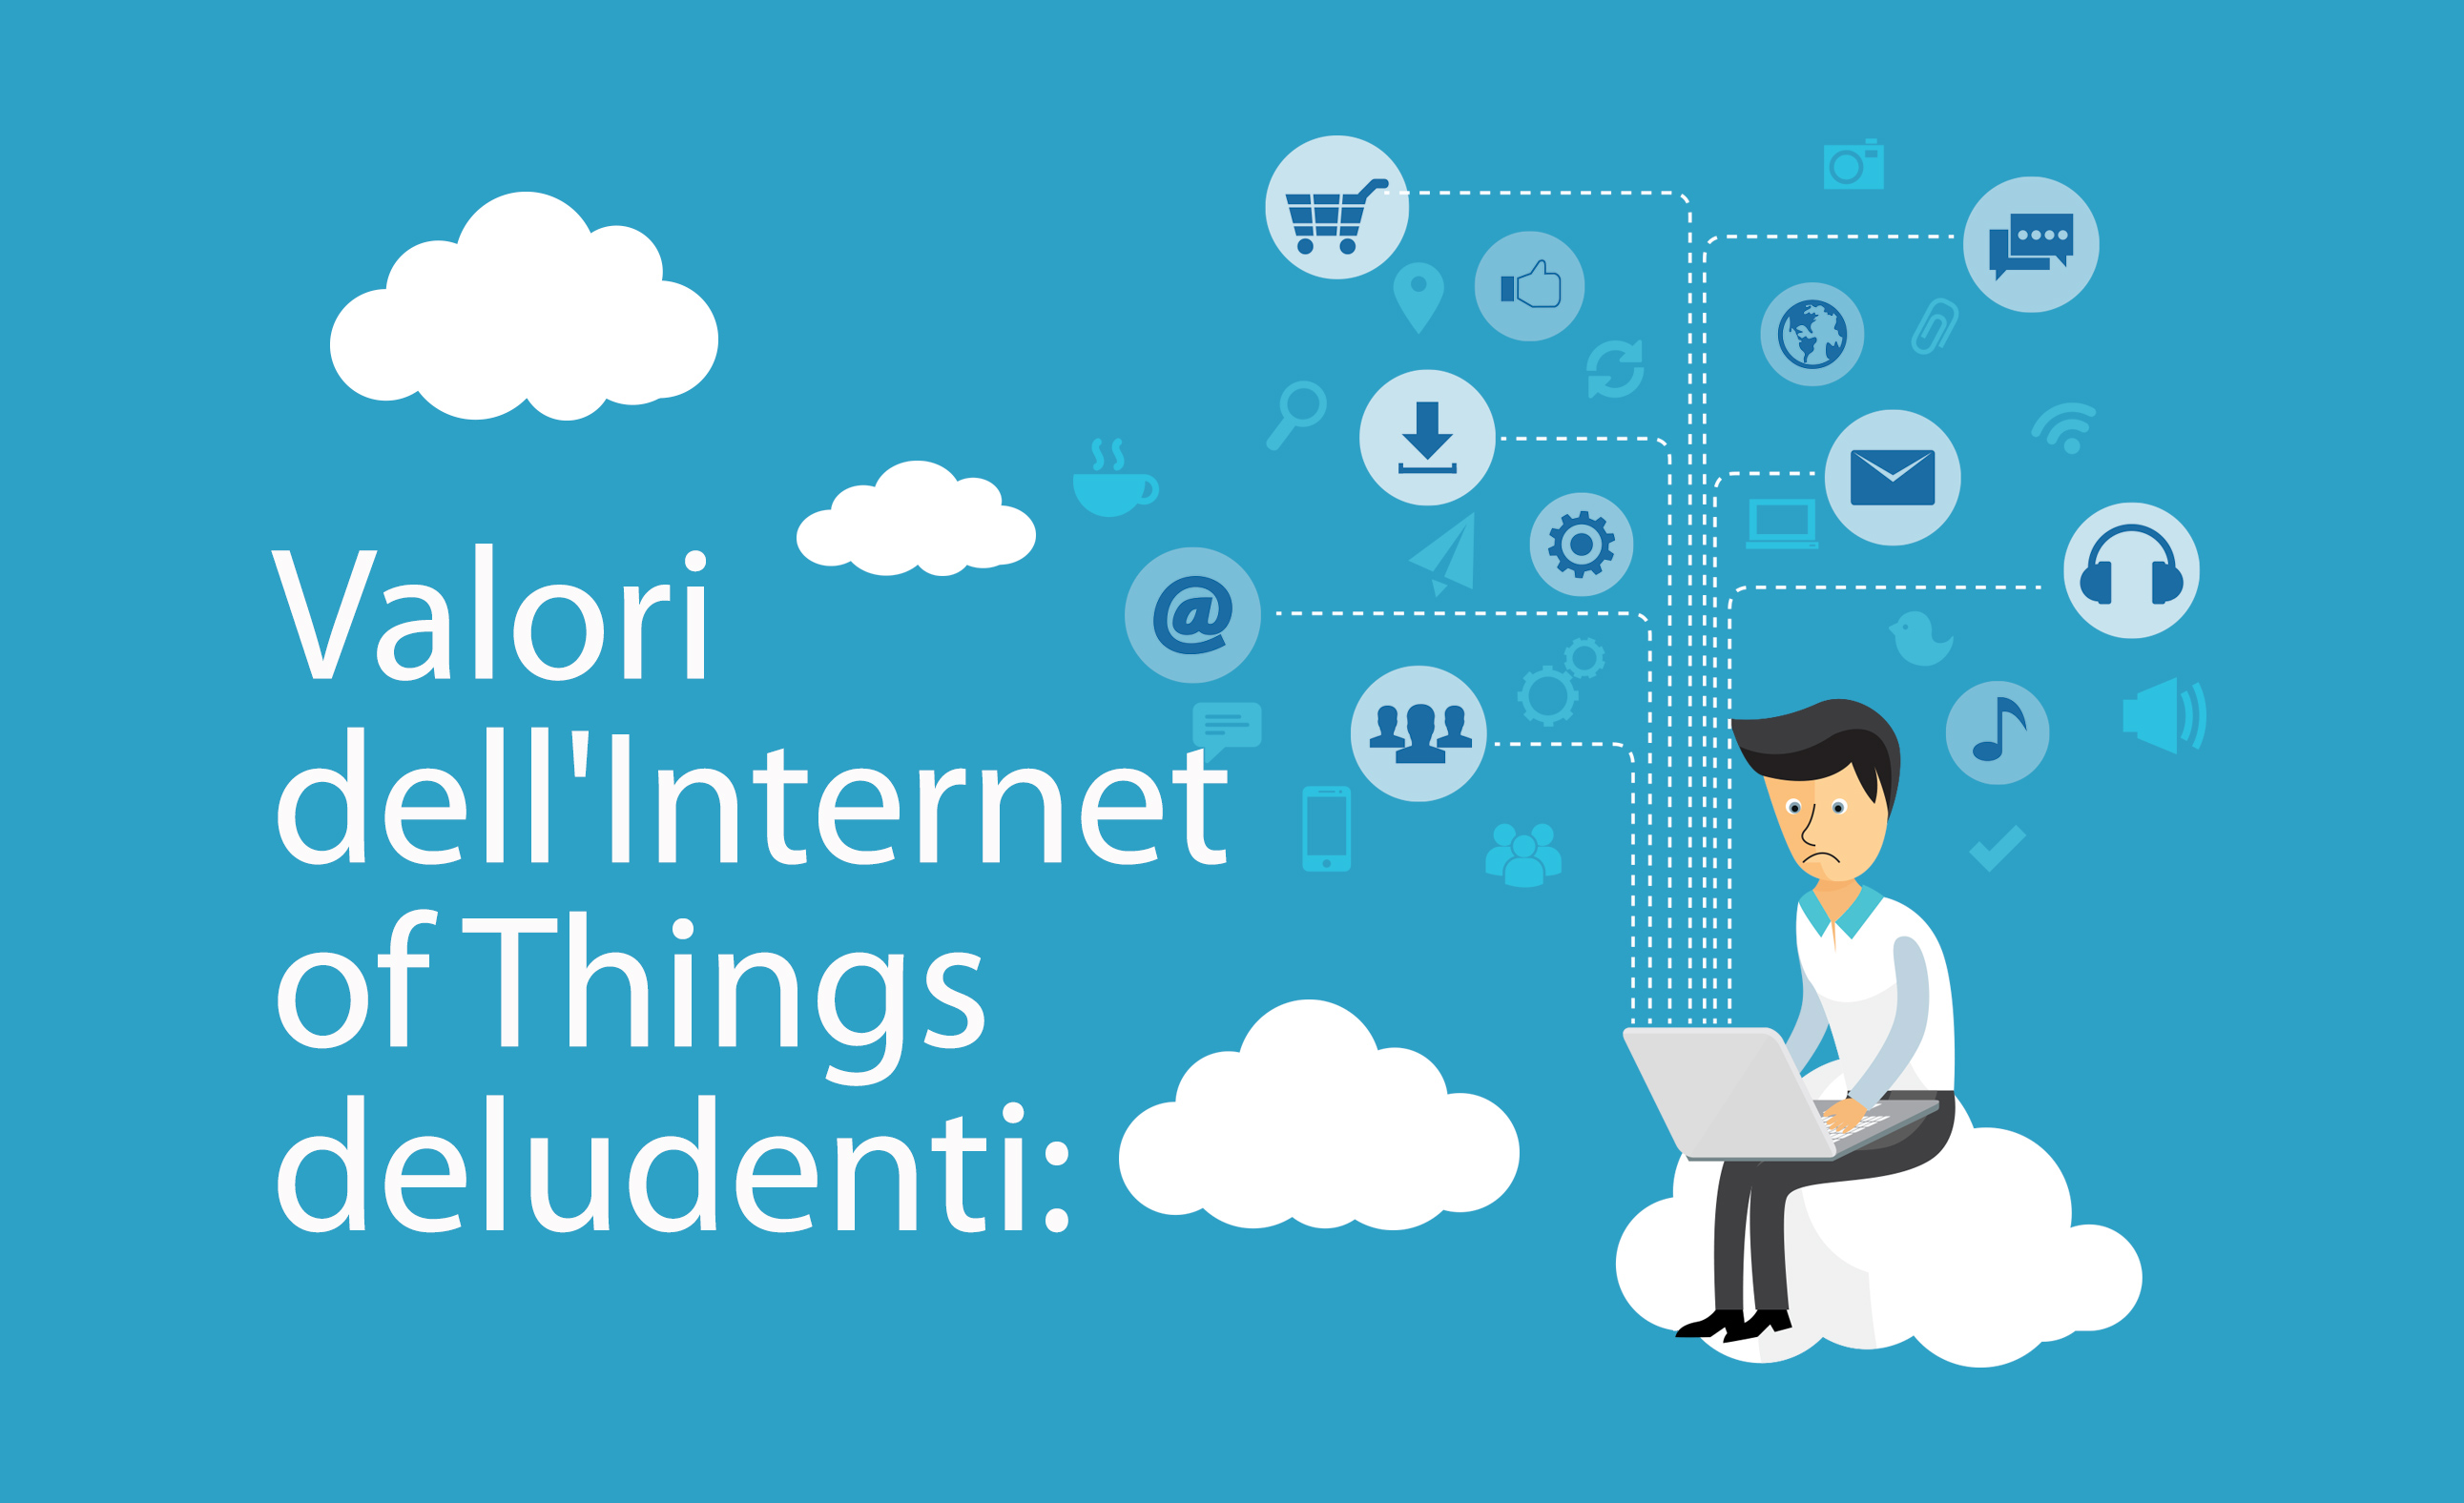 ecommerce guro Valori-Internet-of-Things-deludenti